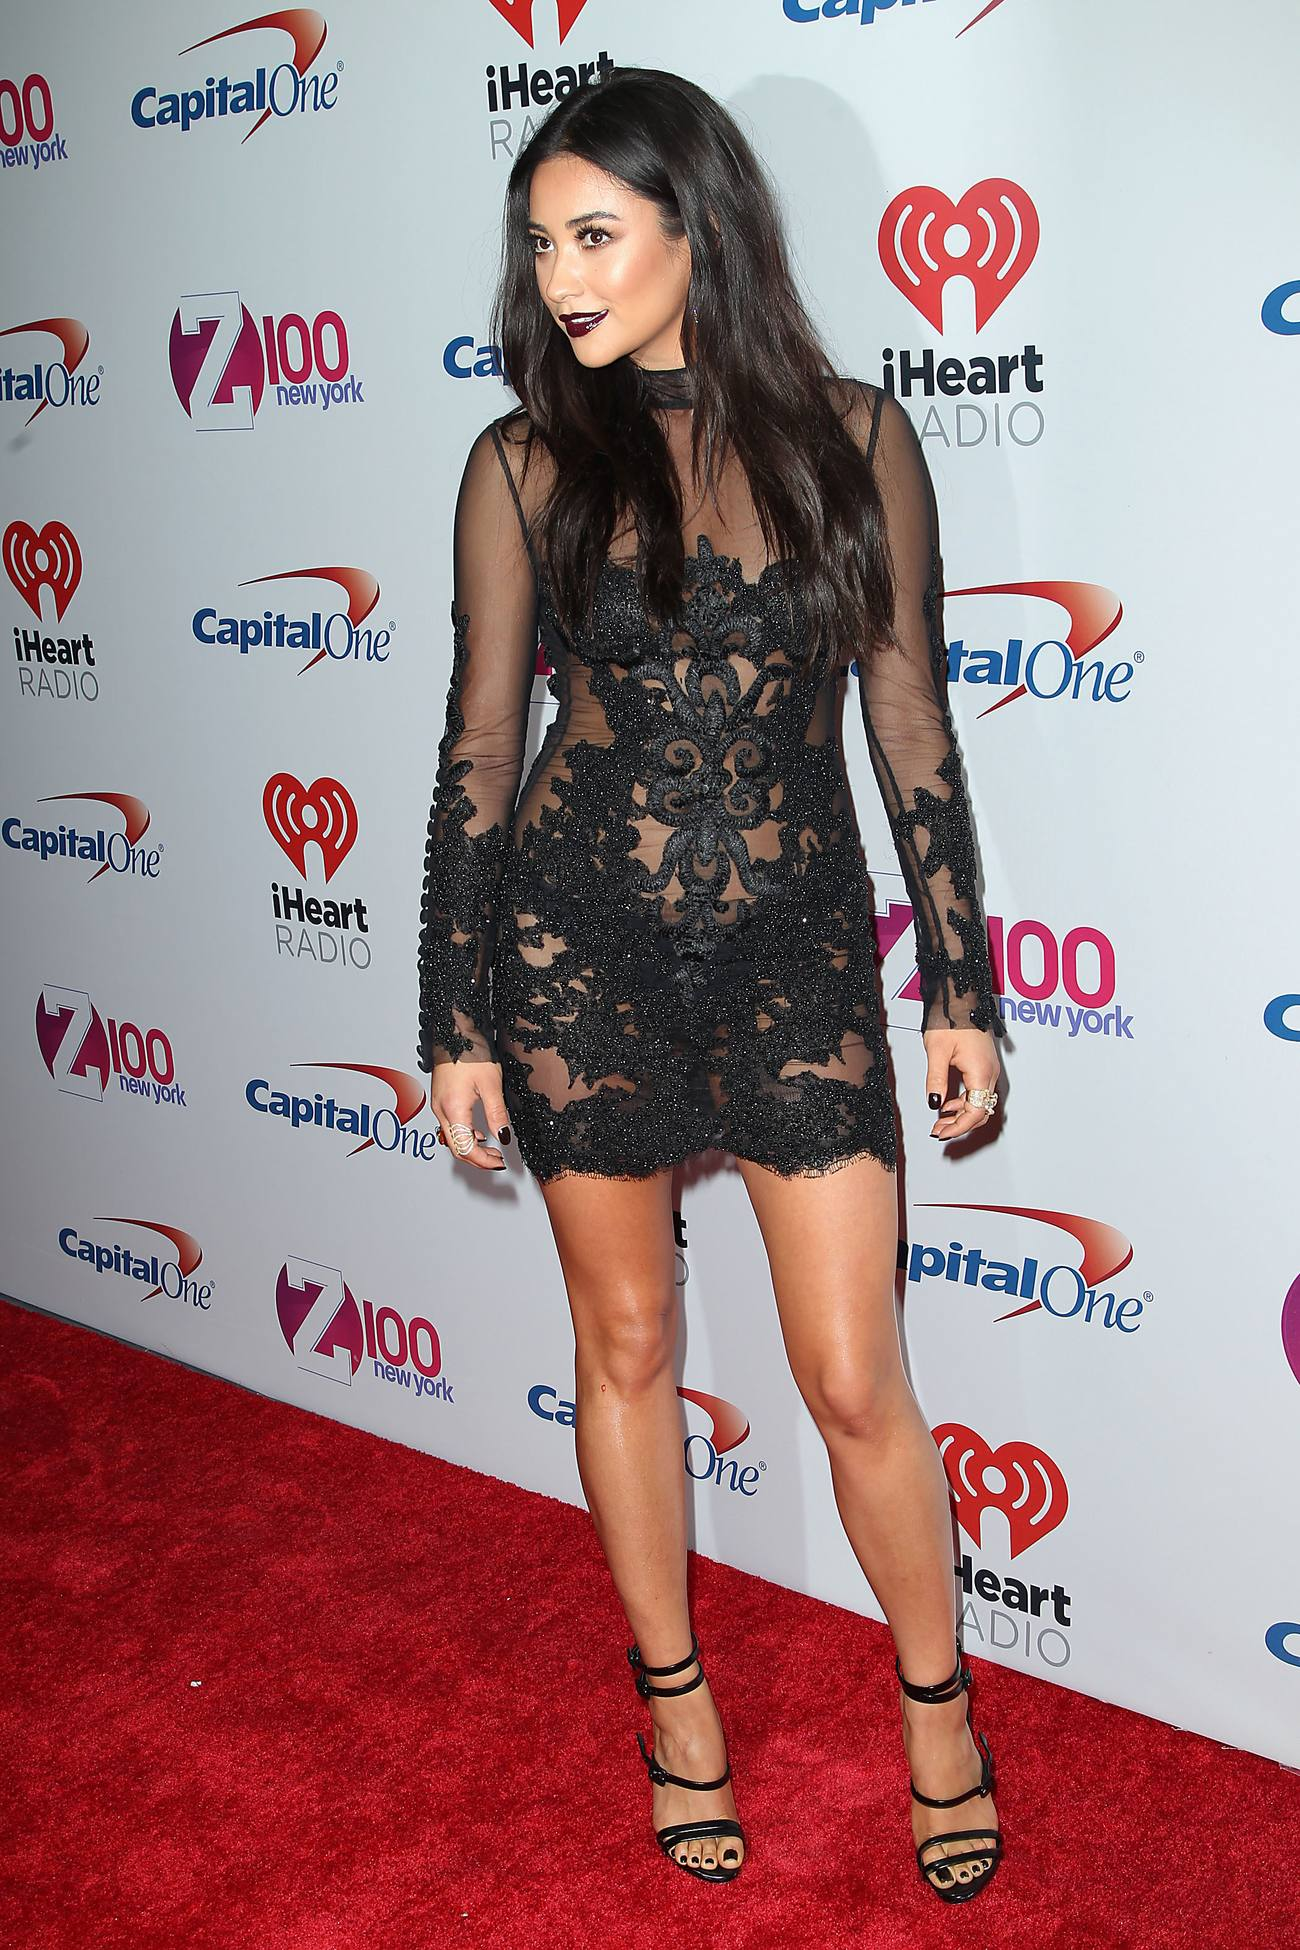 Shay Mitchell arrives at iHeart Radio and Zs Jingle Ball-4